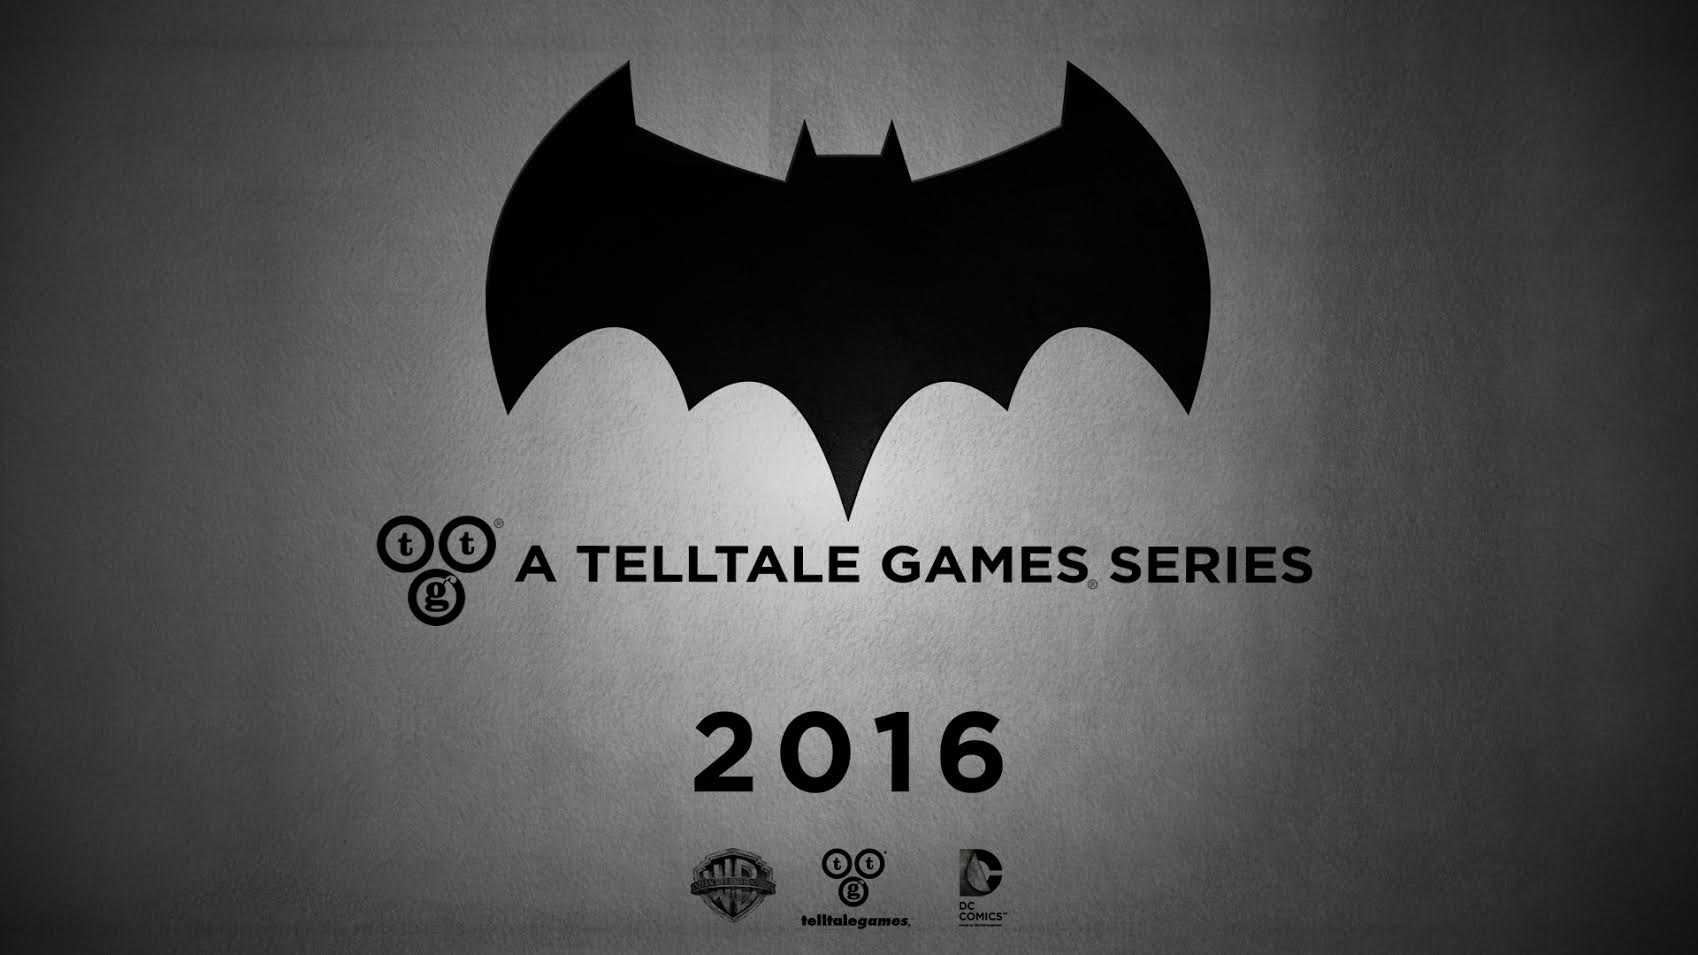 BATMAN LOGO Teaser Trailer Confirms Telltale Are Making A Batman Game For 2016